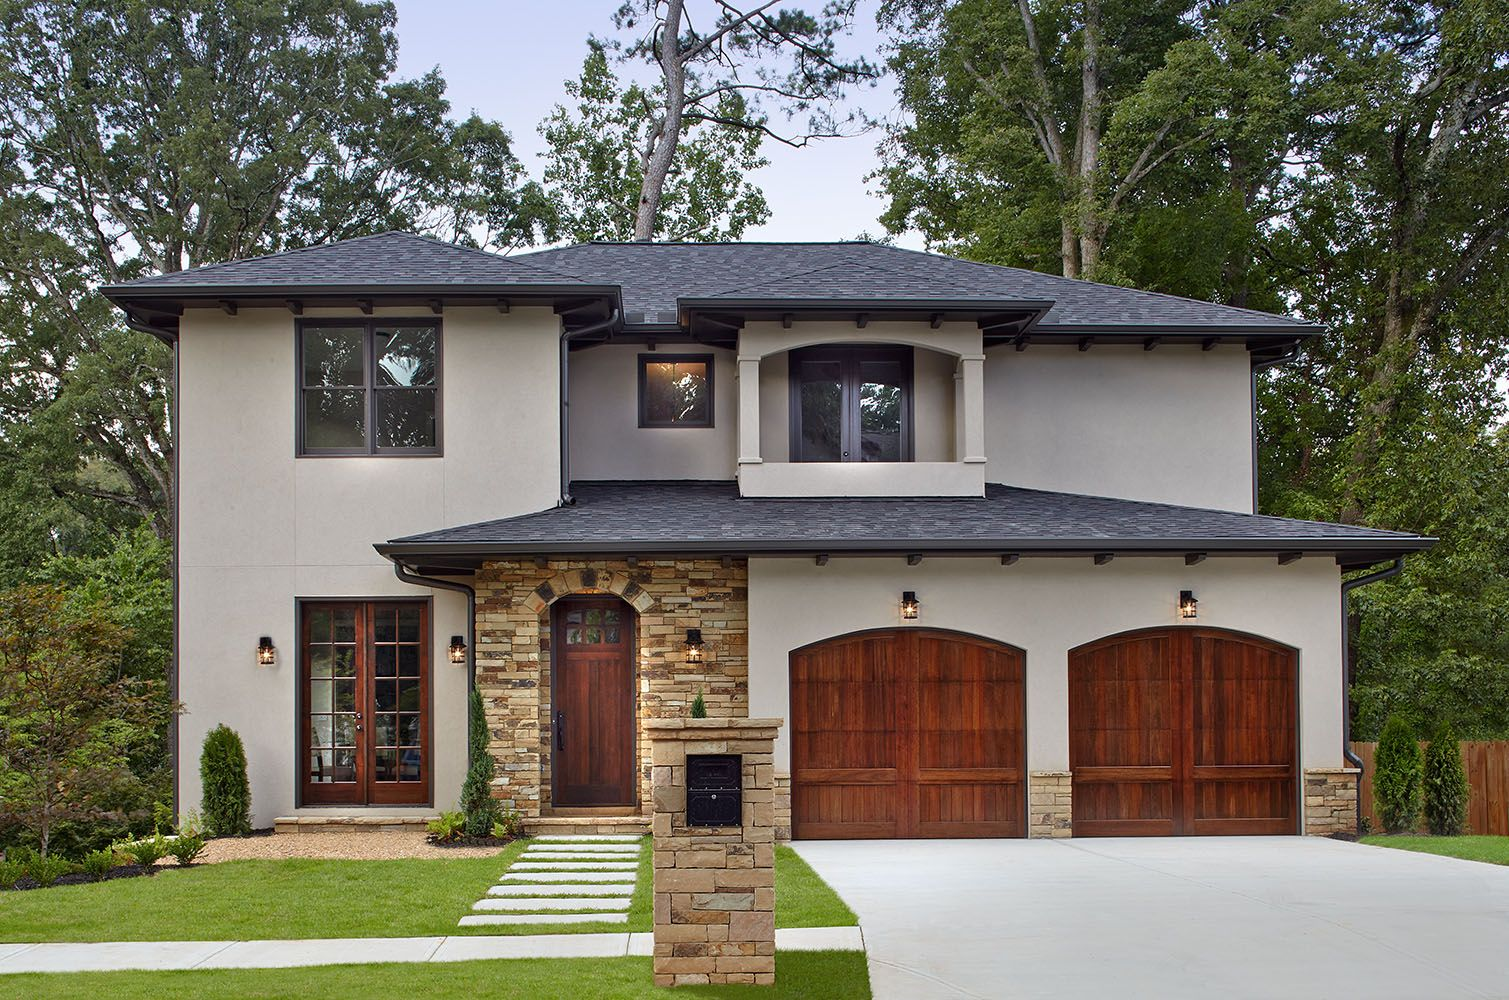 A New Mediterranean Inspired Home In Atlanta S Virginia Highland Neighborhood The Exterior Is Hard Coat Stucc Carriage House Doors House Exterior Stucco Homes